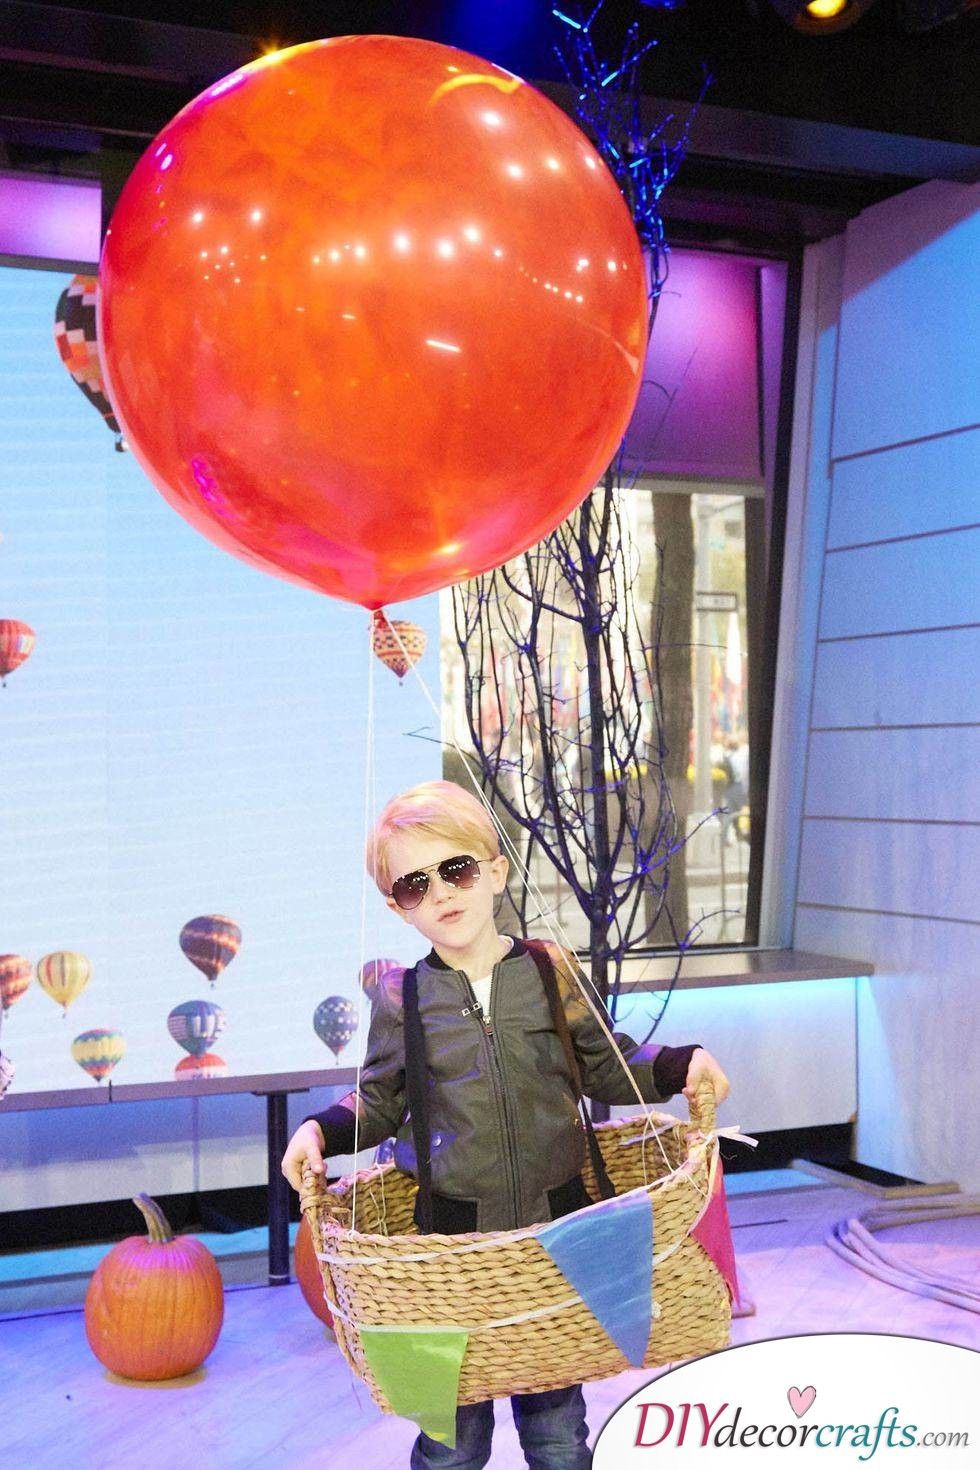 The Best DIY Halloween Costume Ideas For Kids, Hot Air Balloon Pilot